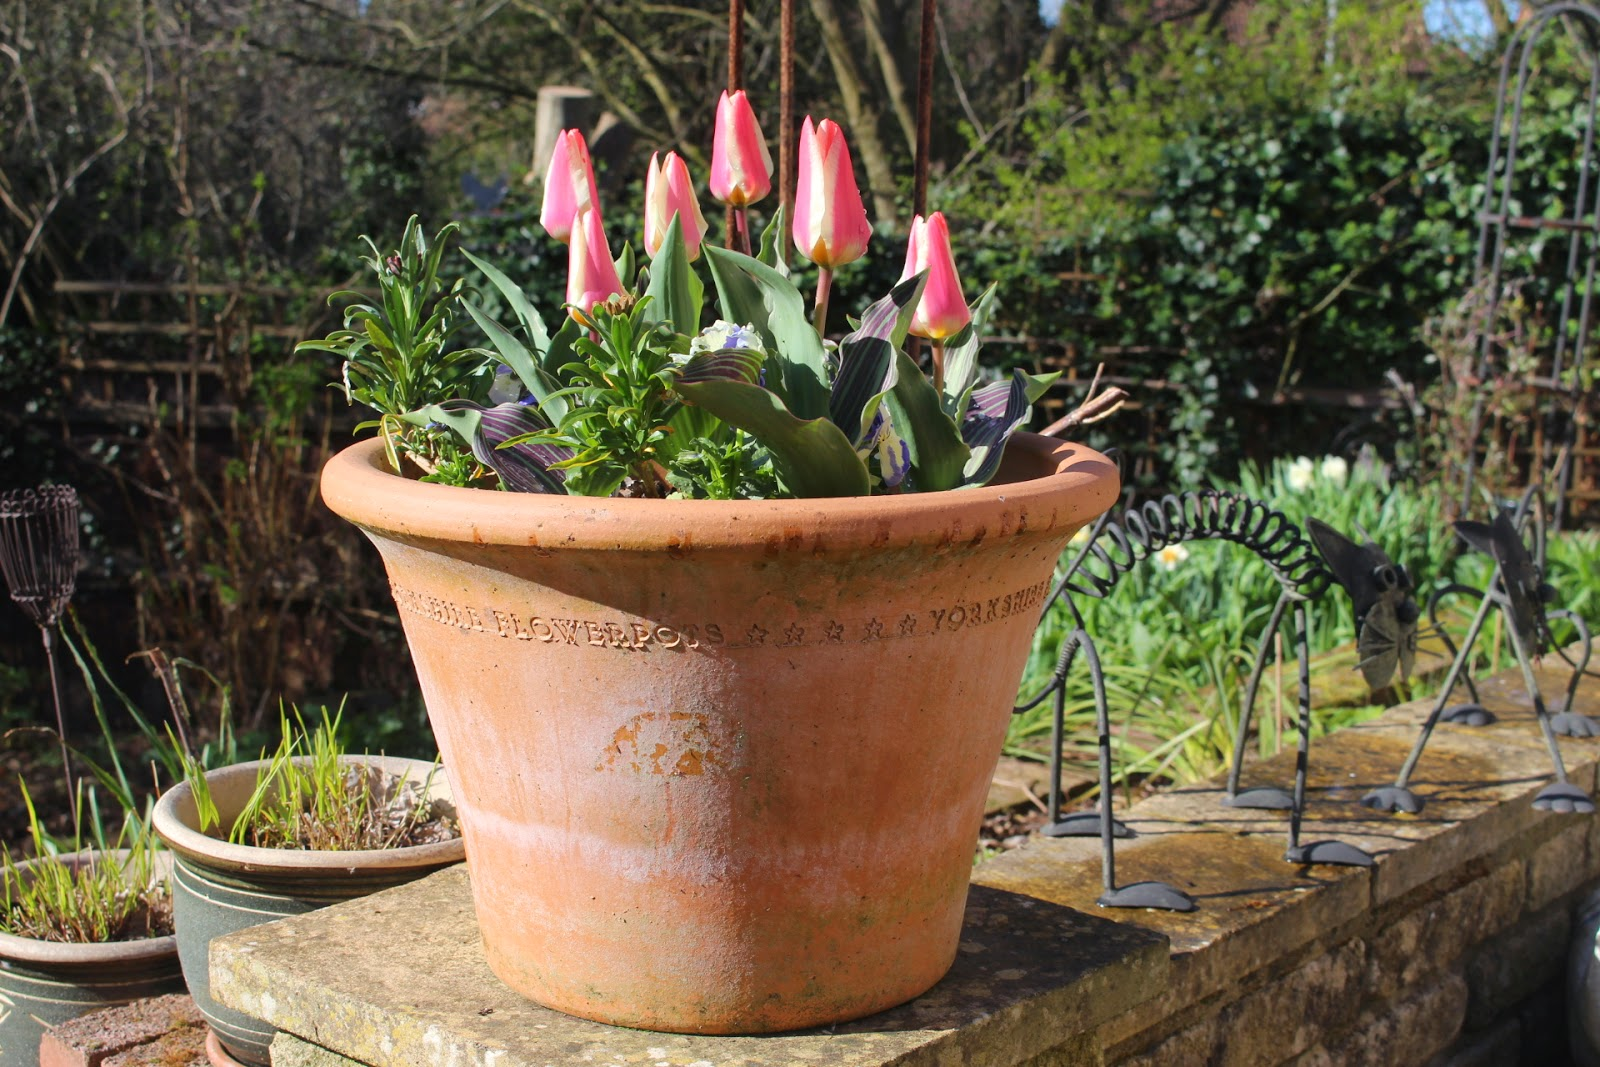 The same potted Tulipa 'St George' on my patio in April 2015